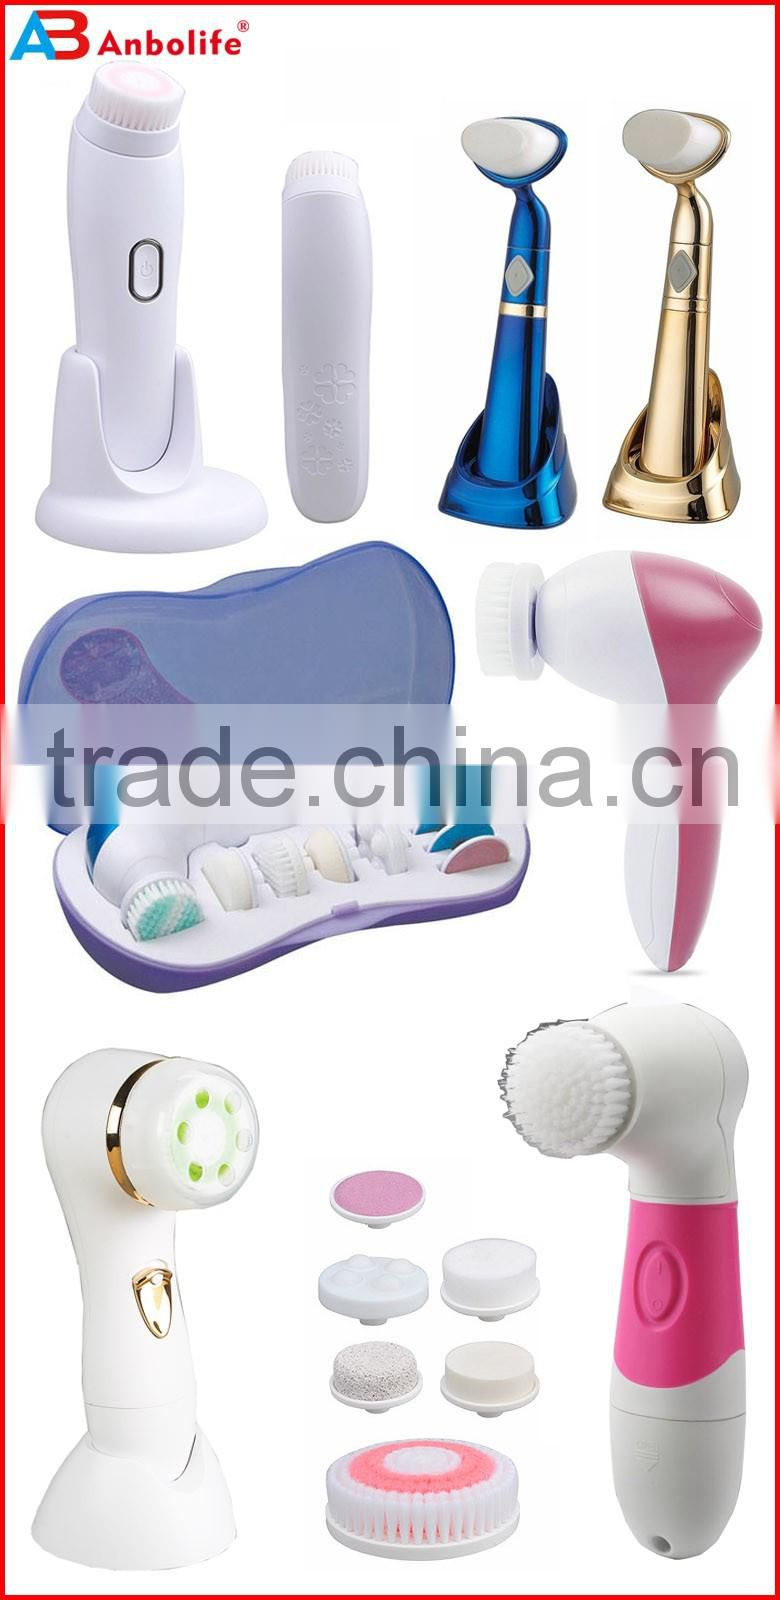 Mini electric face washing cleaner/cleaning facial brush/beauty tool facial brush personal beauty tools